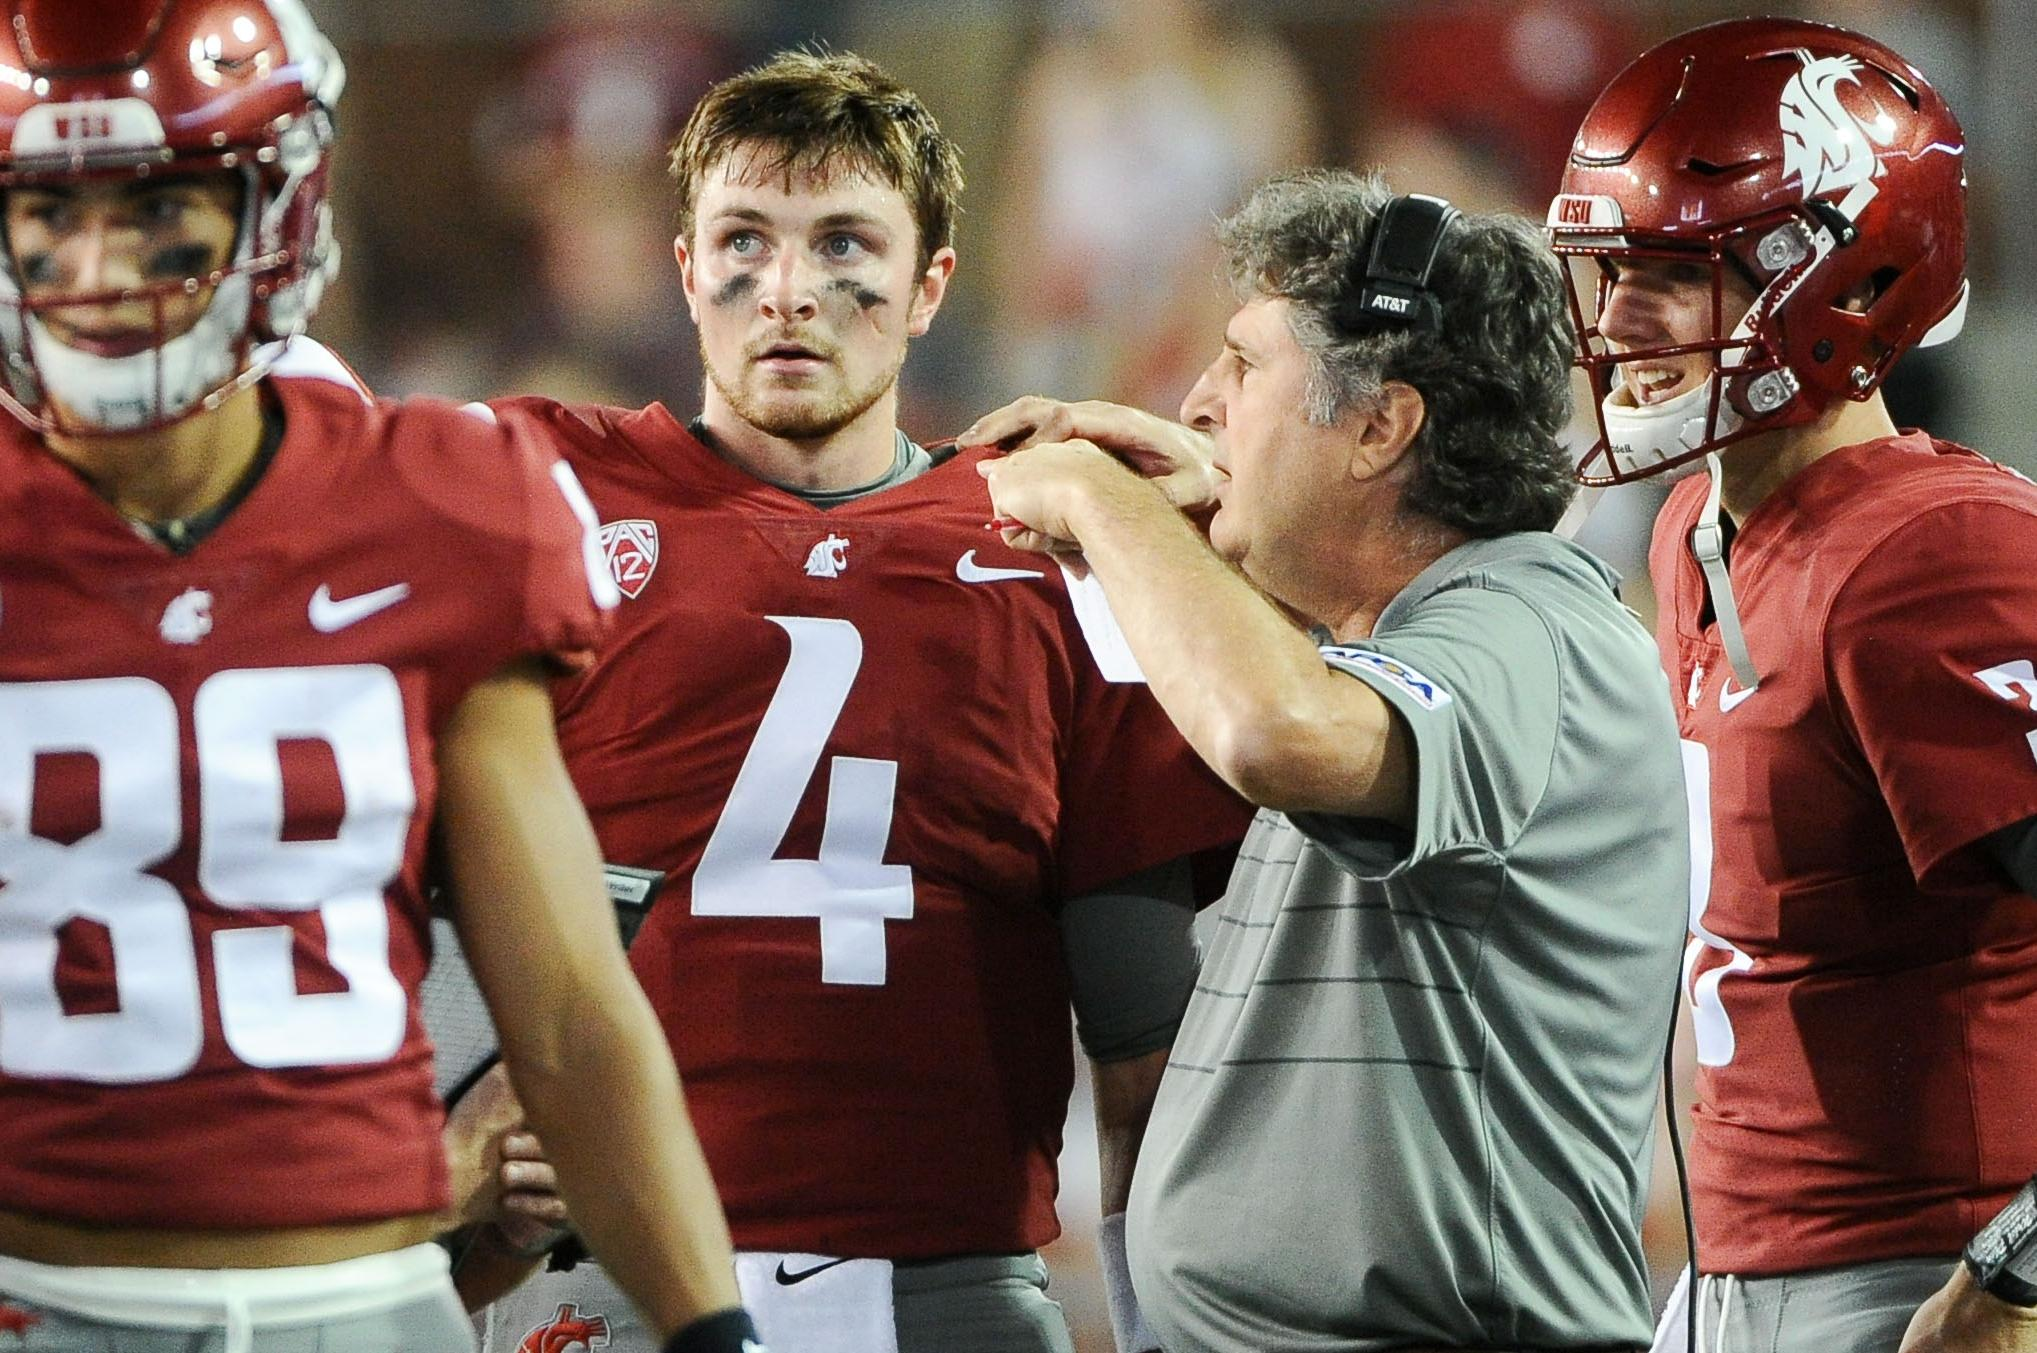 newest d1f7f 742a9 Luke Falk gets the starting nod from Mike Leach as ...